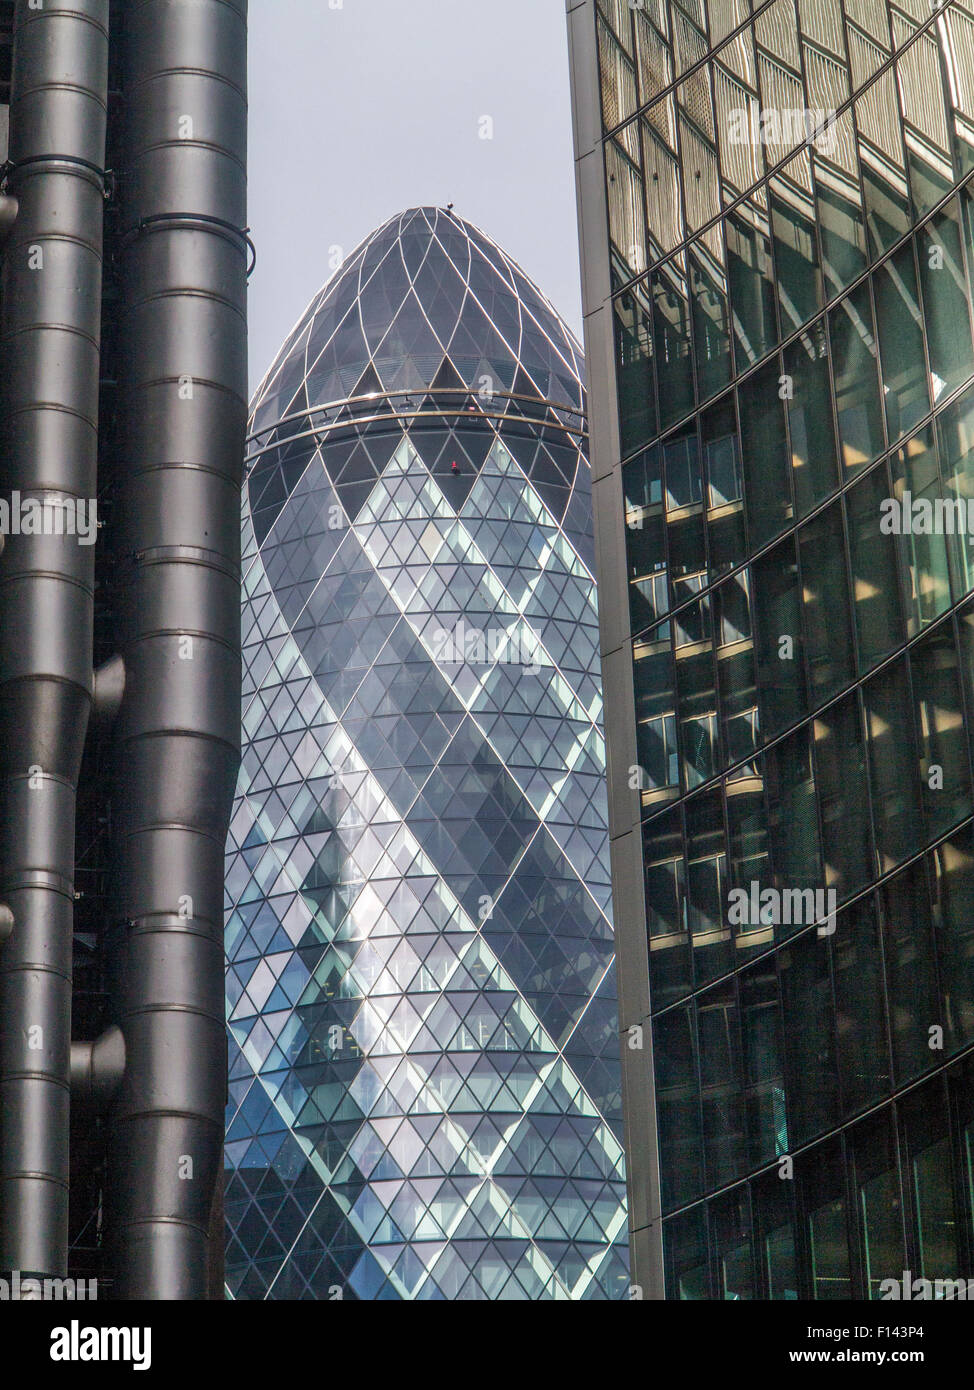 Stormy and sunny slkies light up the Gherkin and the lloyds Building in the City of London and St.andrew Undershaft - Stock Image